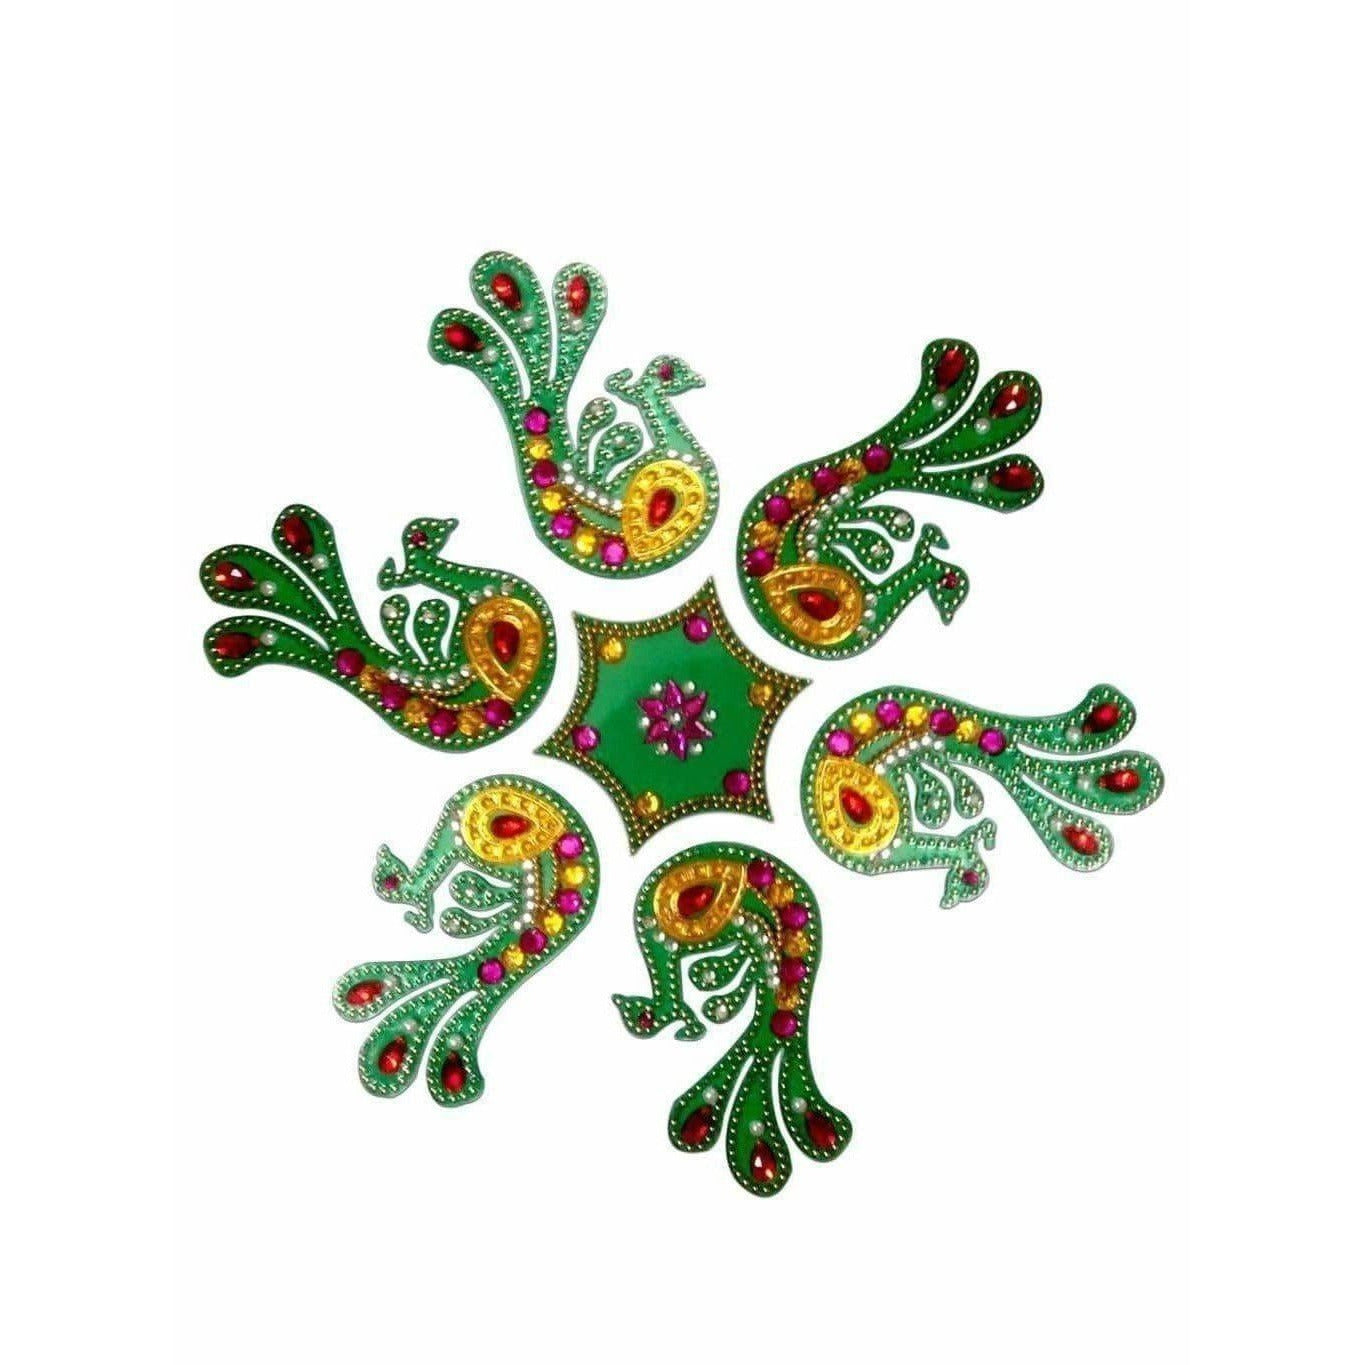 Beautiful peacock Shaped Kundan Rangoli Design Green color For Floor Decoration and Pooja Decoration - Distacart